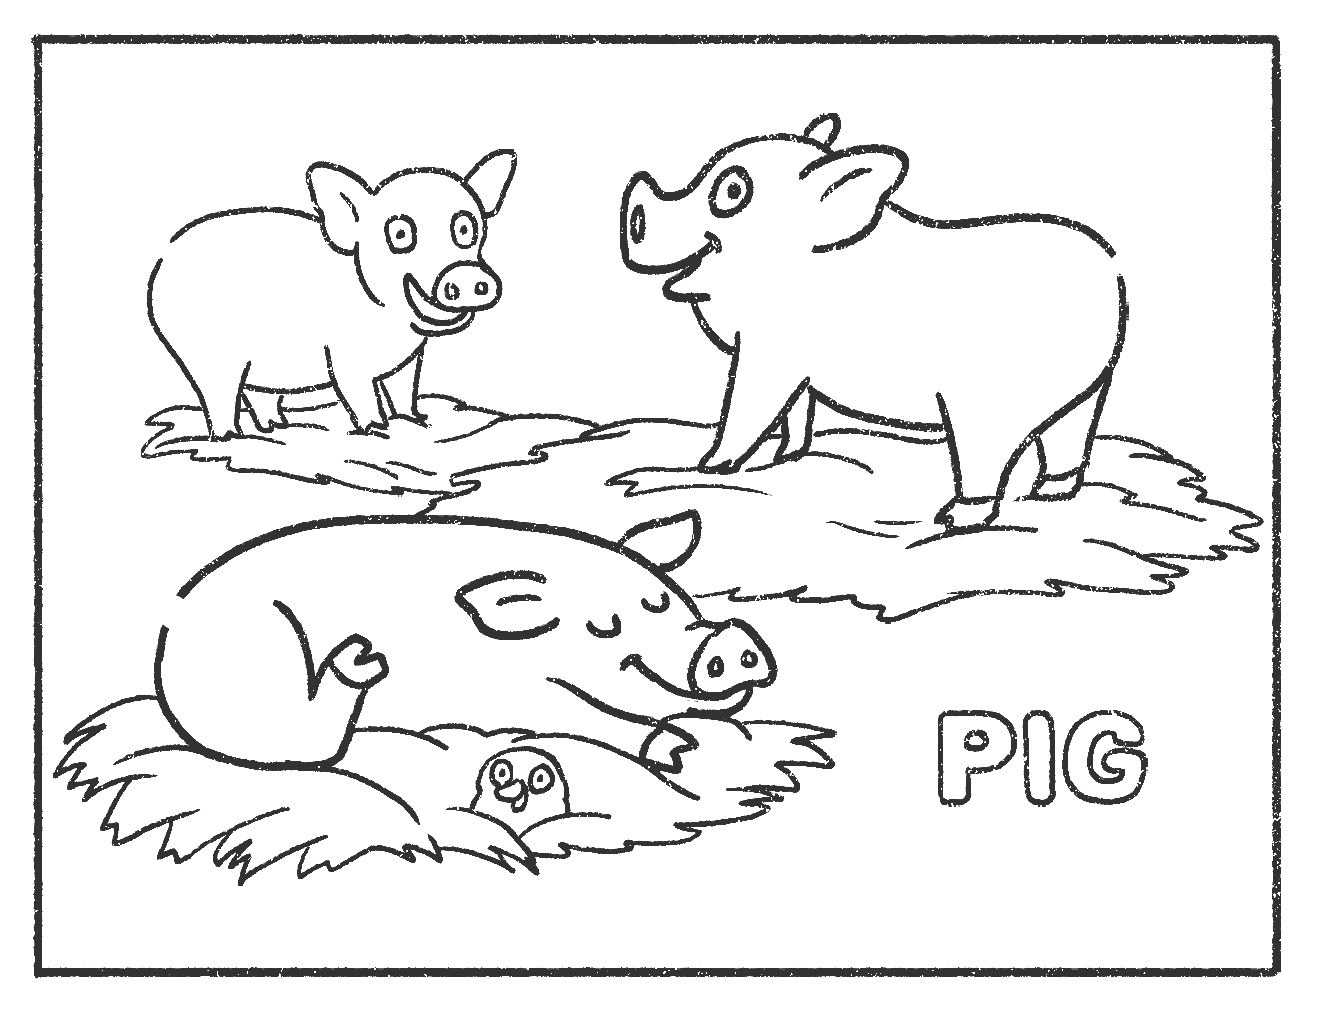 Pig_Colouring